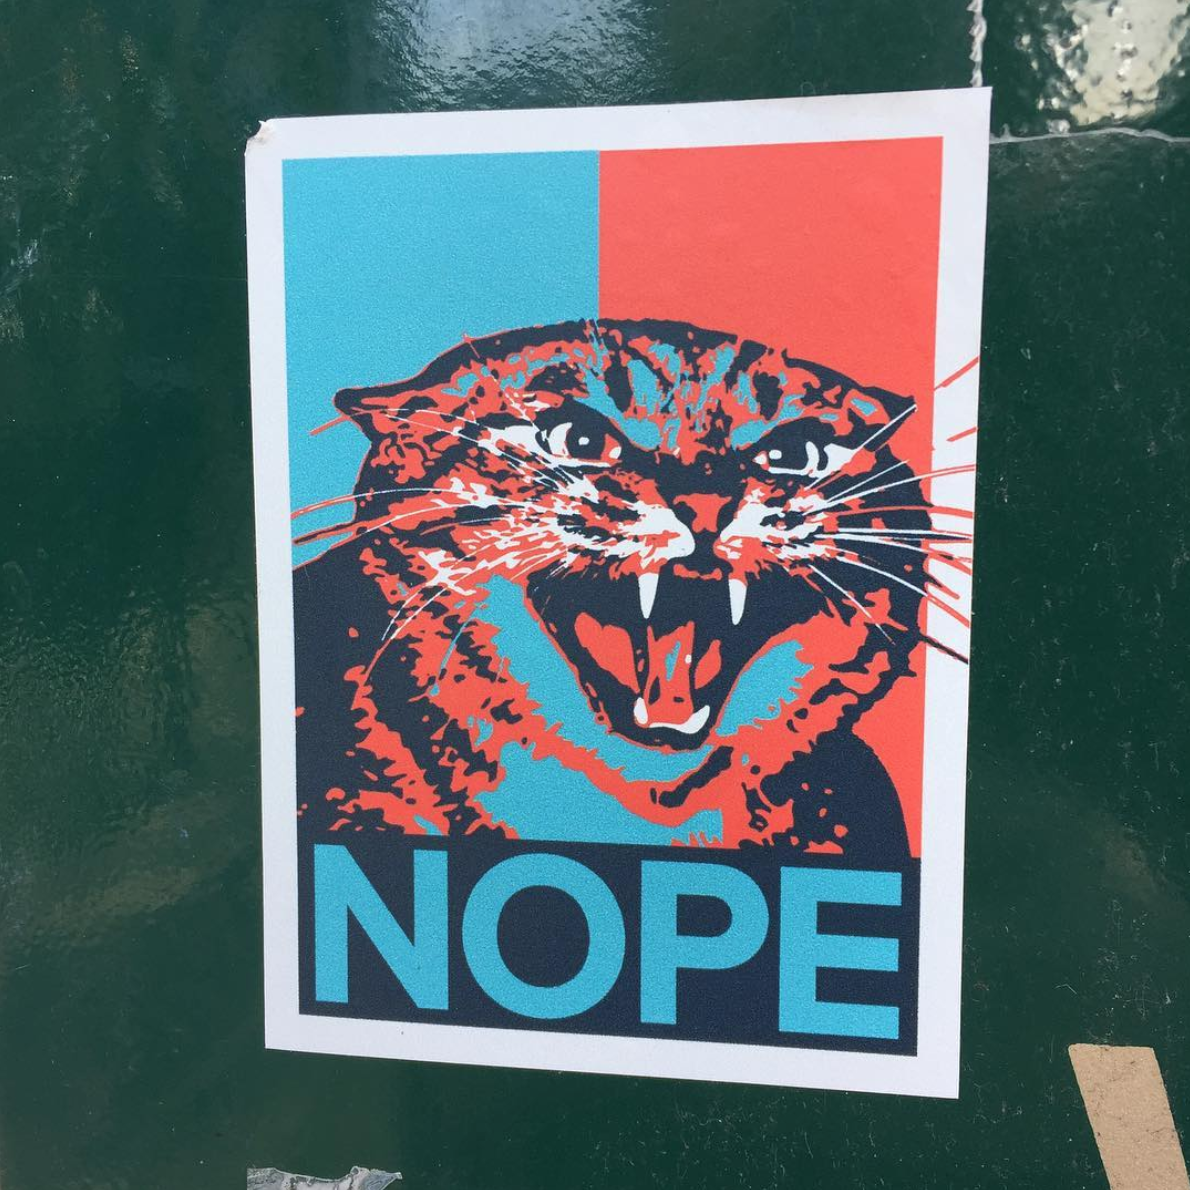 "Picture of Cat in the design of President Obama's original campaign Hope poster saying ""Nope"""